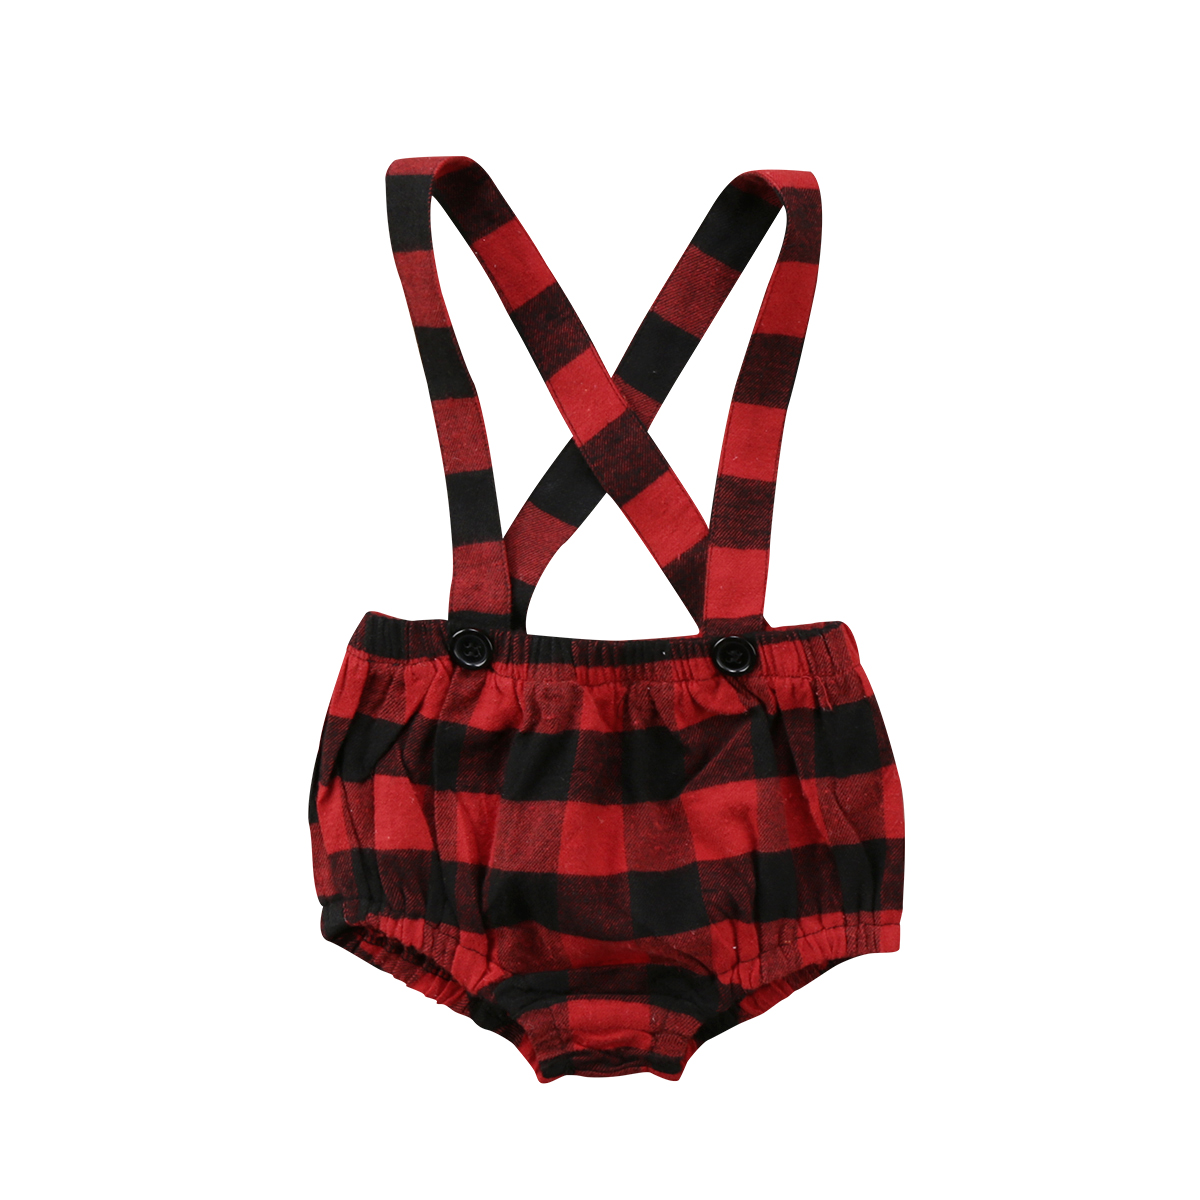 0-3T New Style Cute Newborn Kids Baby Girls Plaid Suspenders Brace Pants Shorts Outfits Clothes(China)